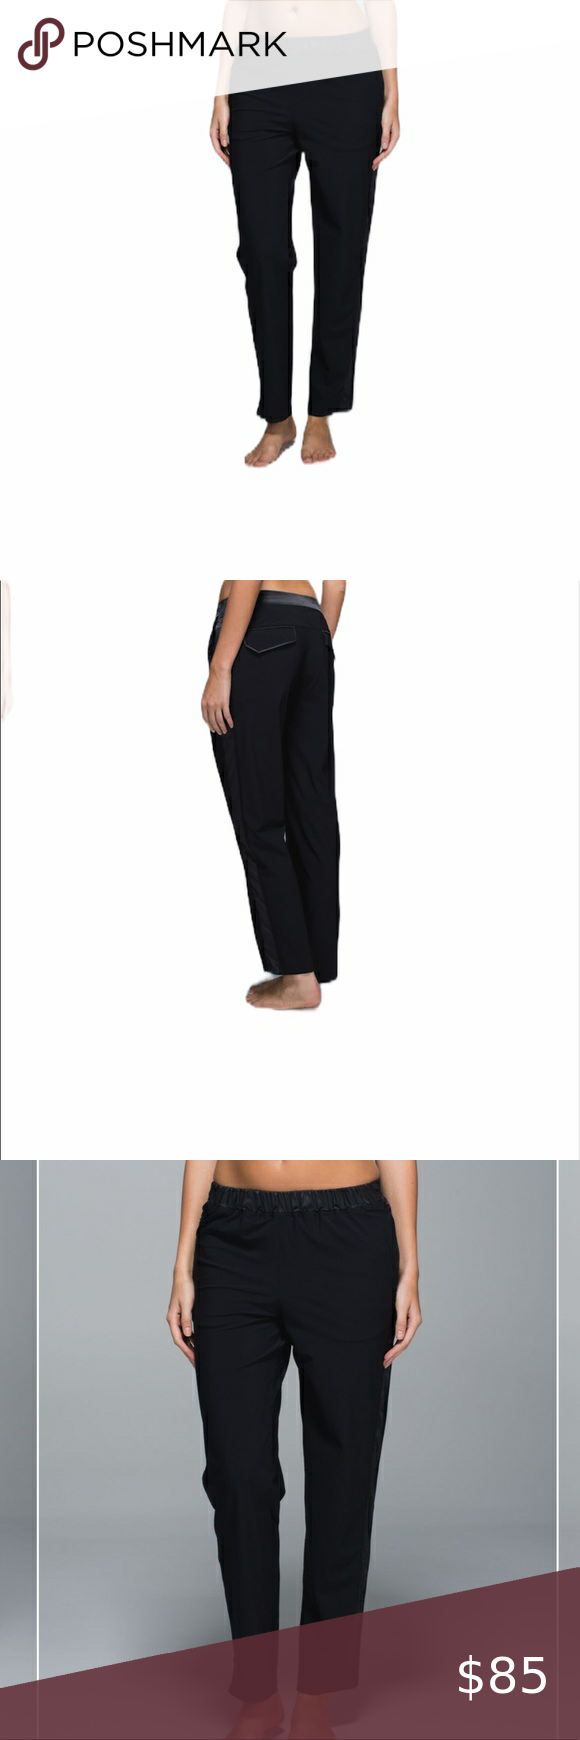 Copy Lululemon Rise And Shine Trousers Style Number Is W5g36s Measurements Approximately Waist 13 Rise 10 Inseam 28 2 In 2020 Jumpsuit Trousers Trousers Lululemon